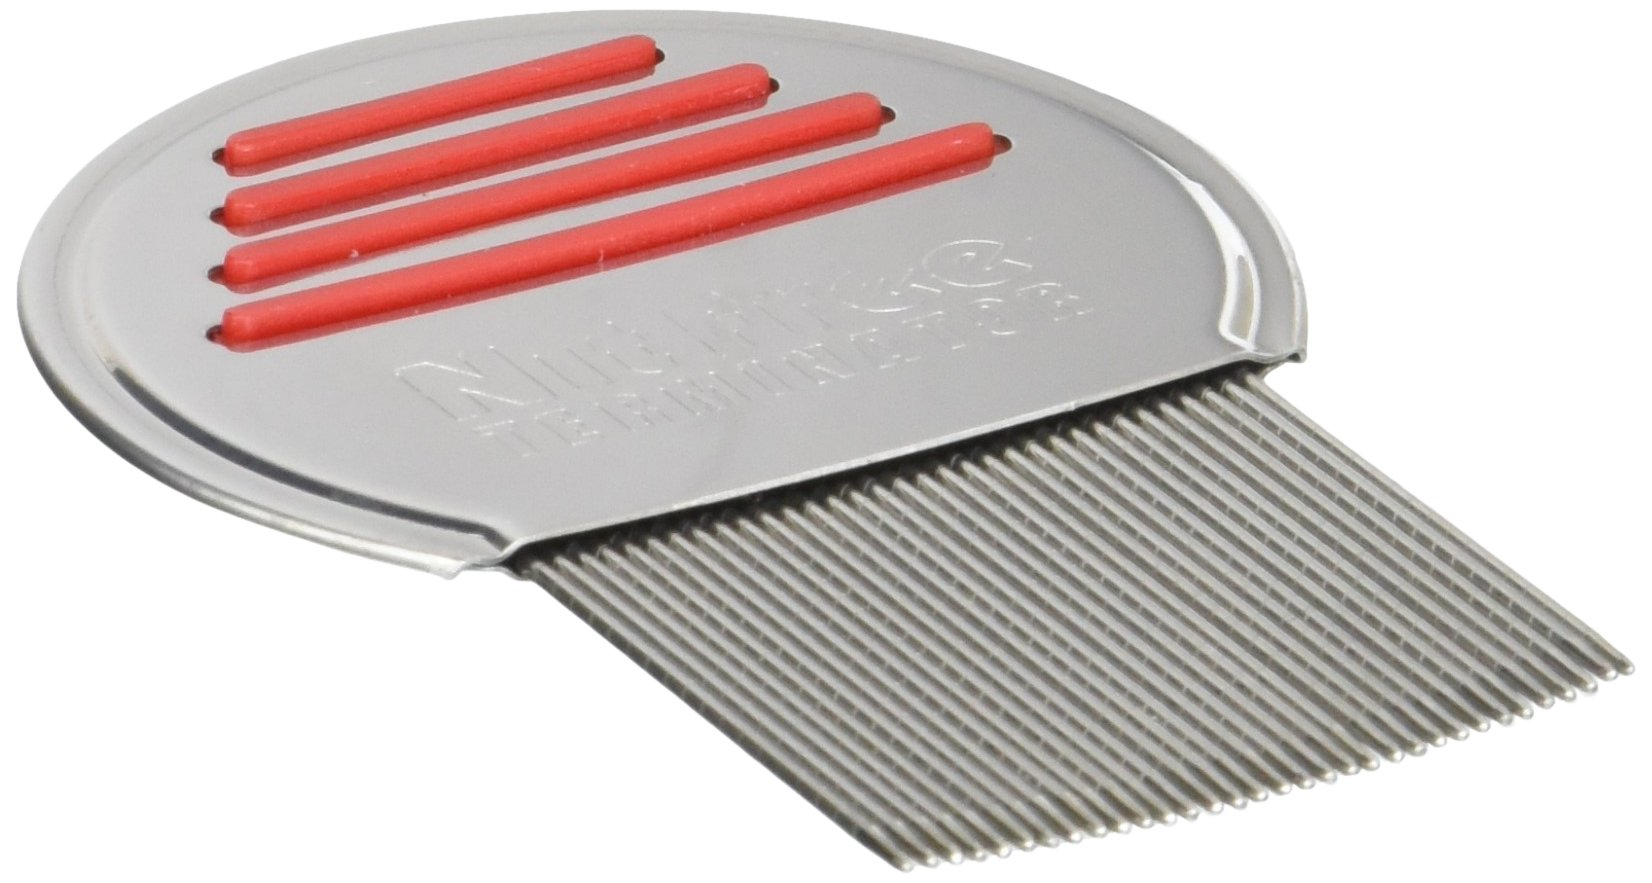 Lice Knowing You Knock Out Lice Comb, 8 Ounce